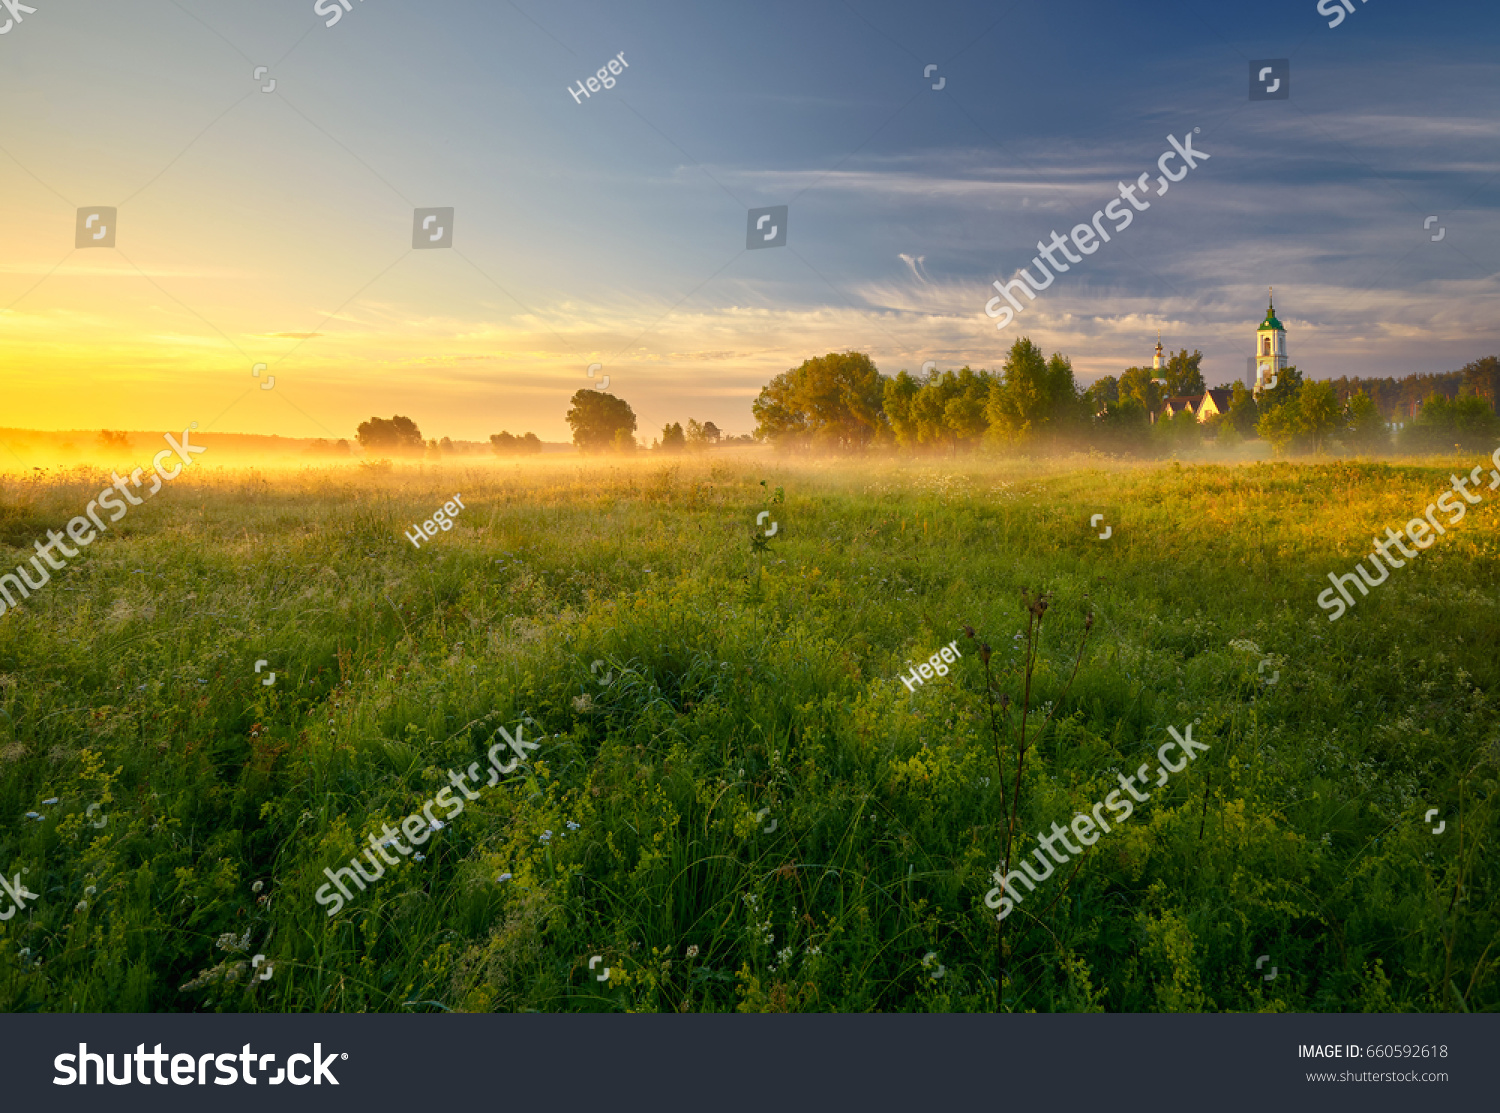 Field With Flowers Sunrise And Church In The Distance